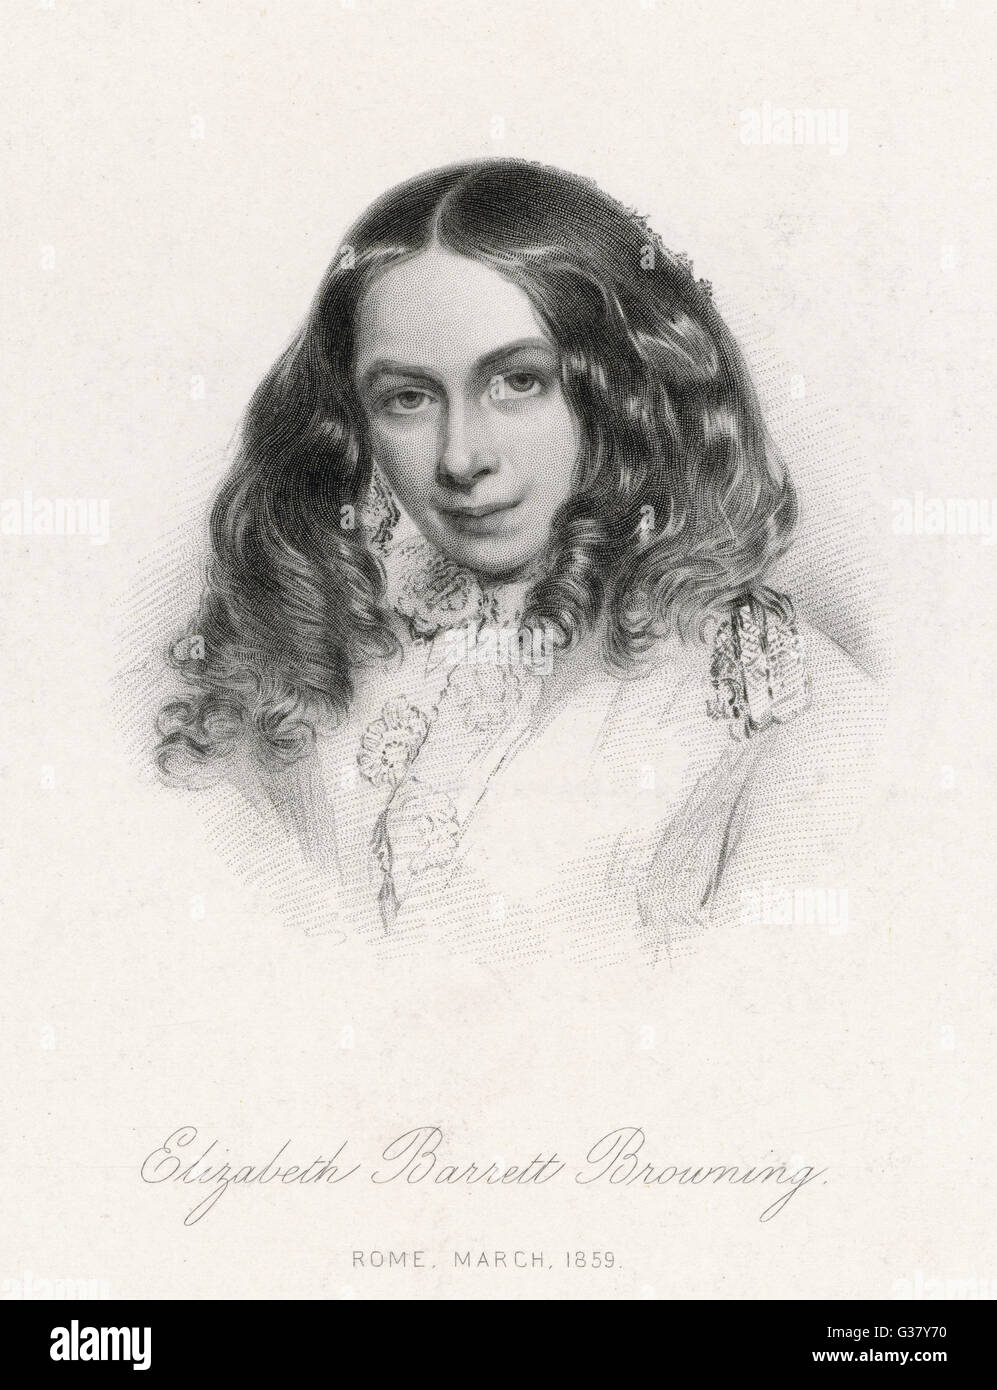 Elizabeth Barrett Browning(1806-1861), Writer; in Rome, March 1859. - Stock Image